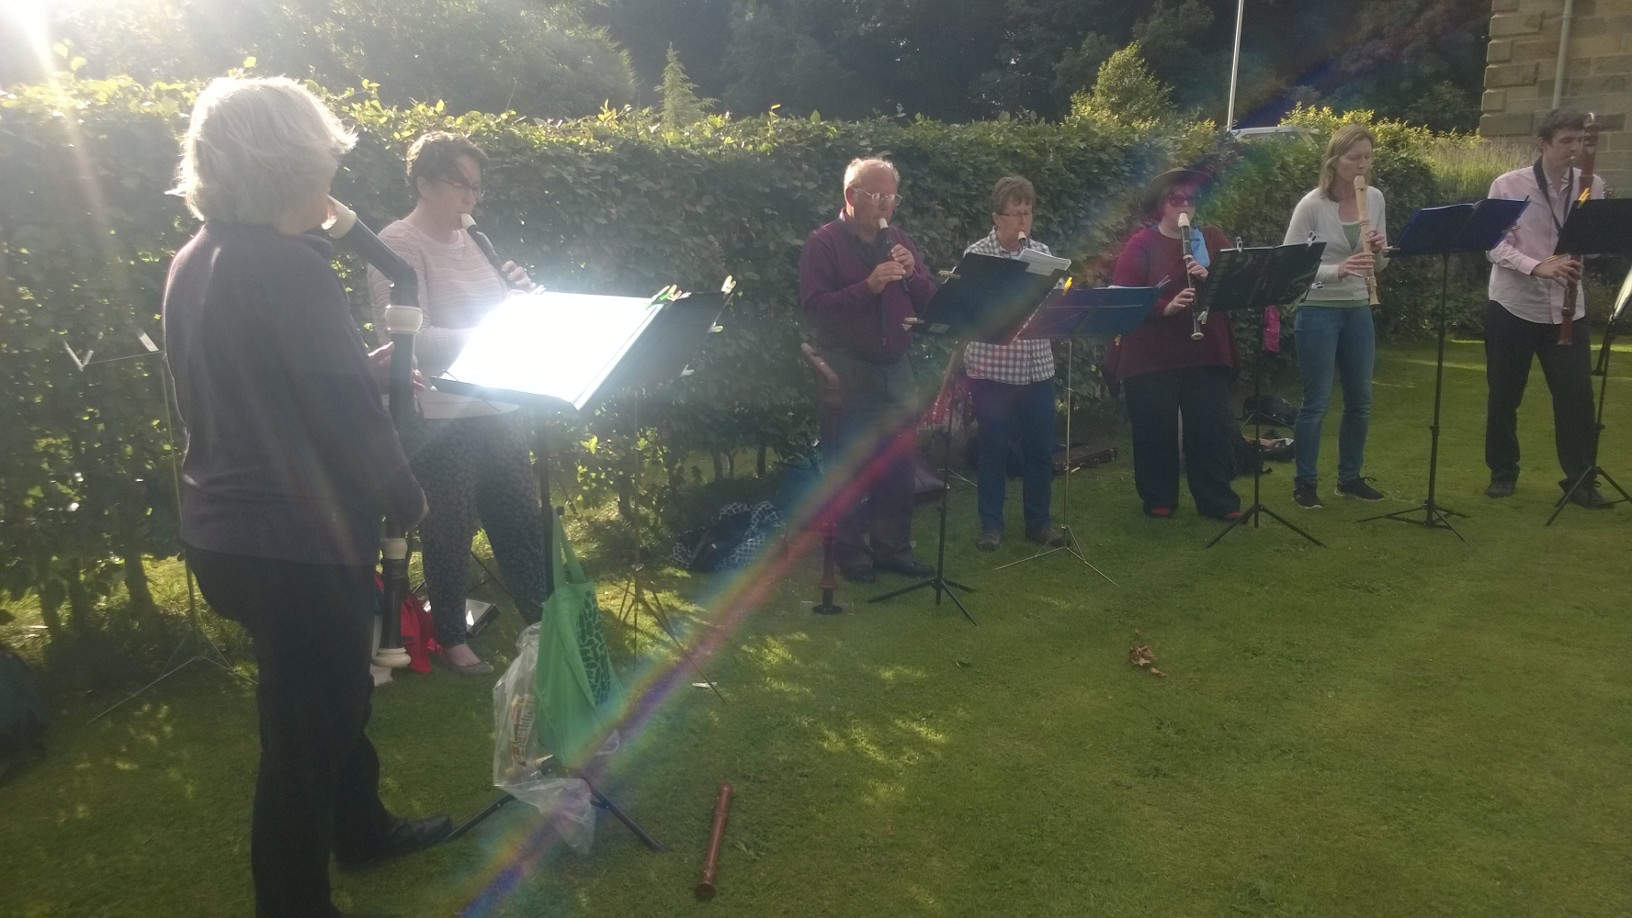 An evening of elizabethan music with Felton Music and Handlebards